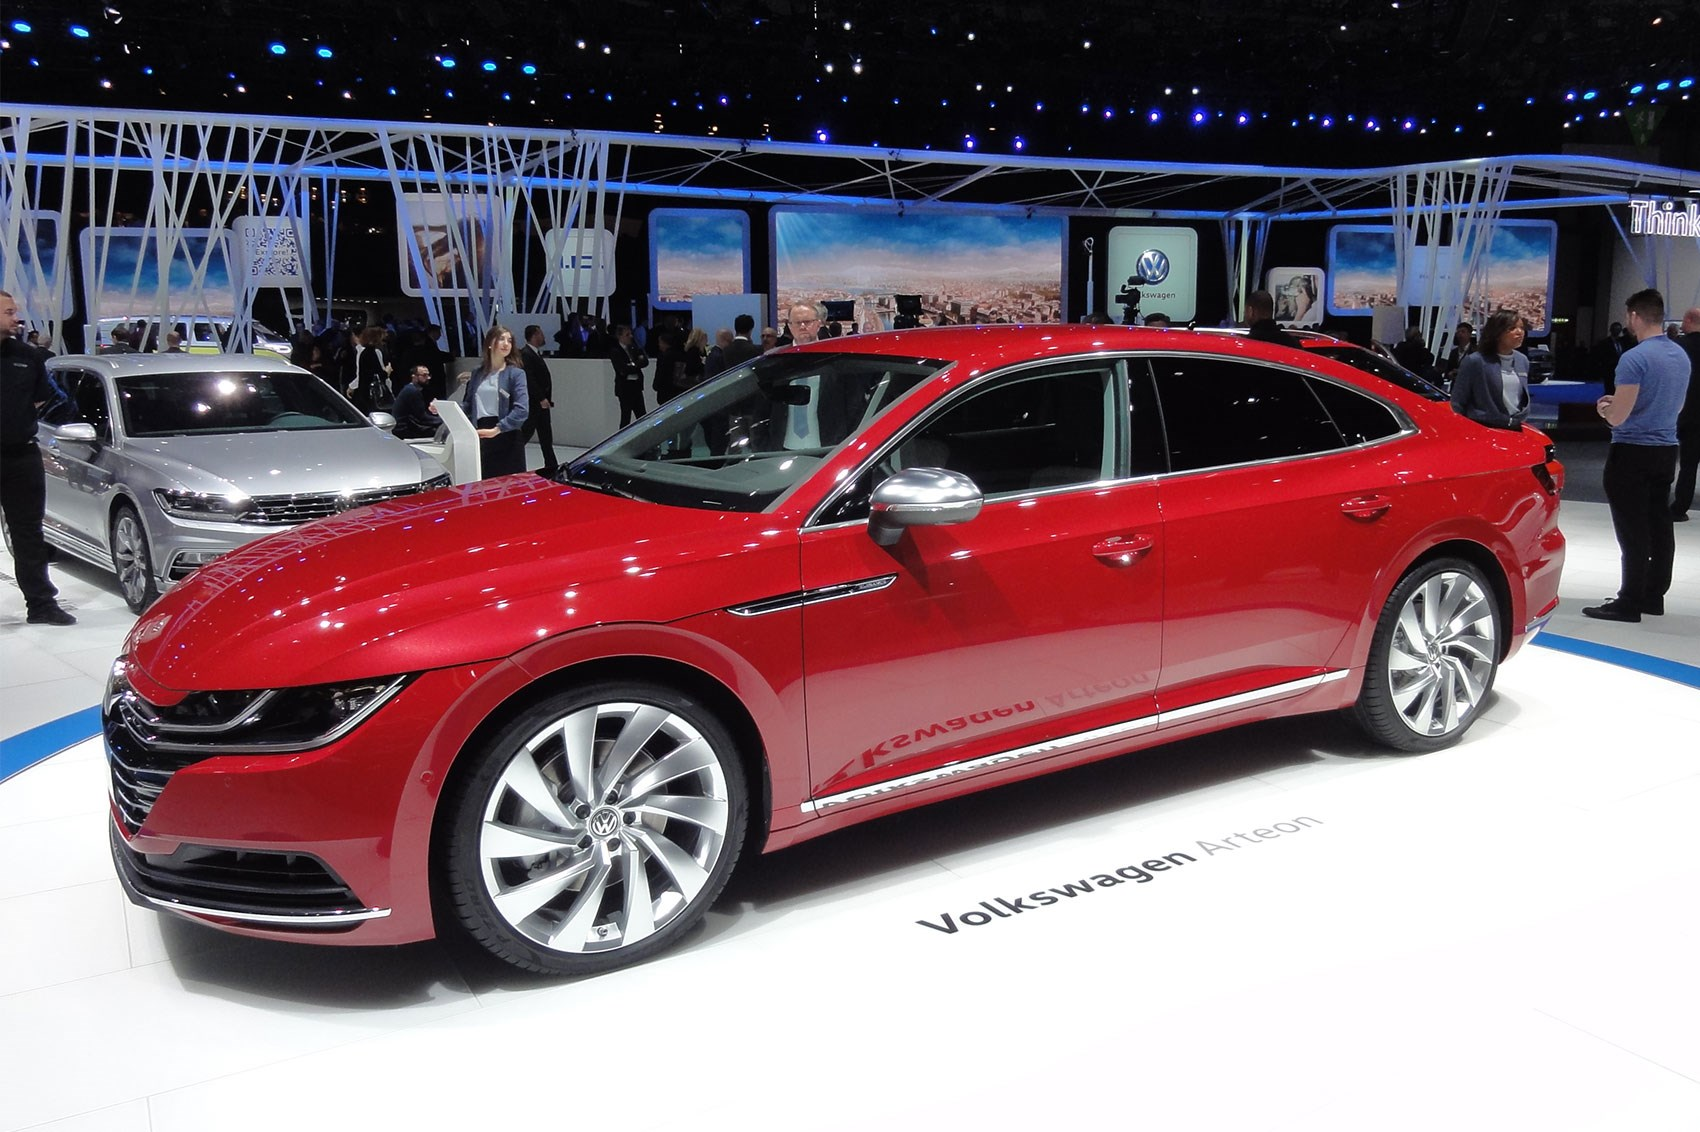 Vw Arteon Red At Geneva 2017 The New